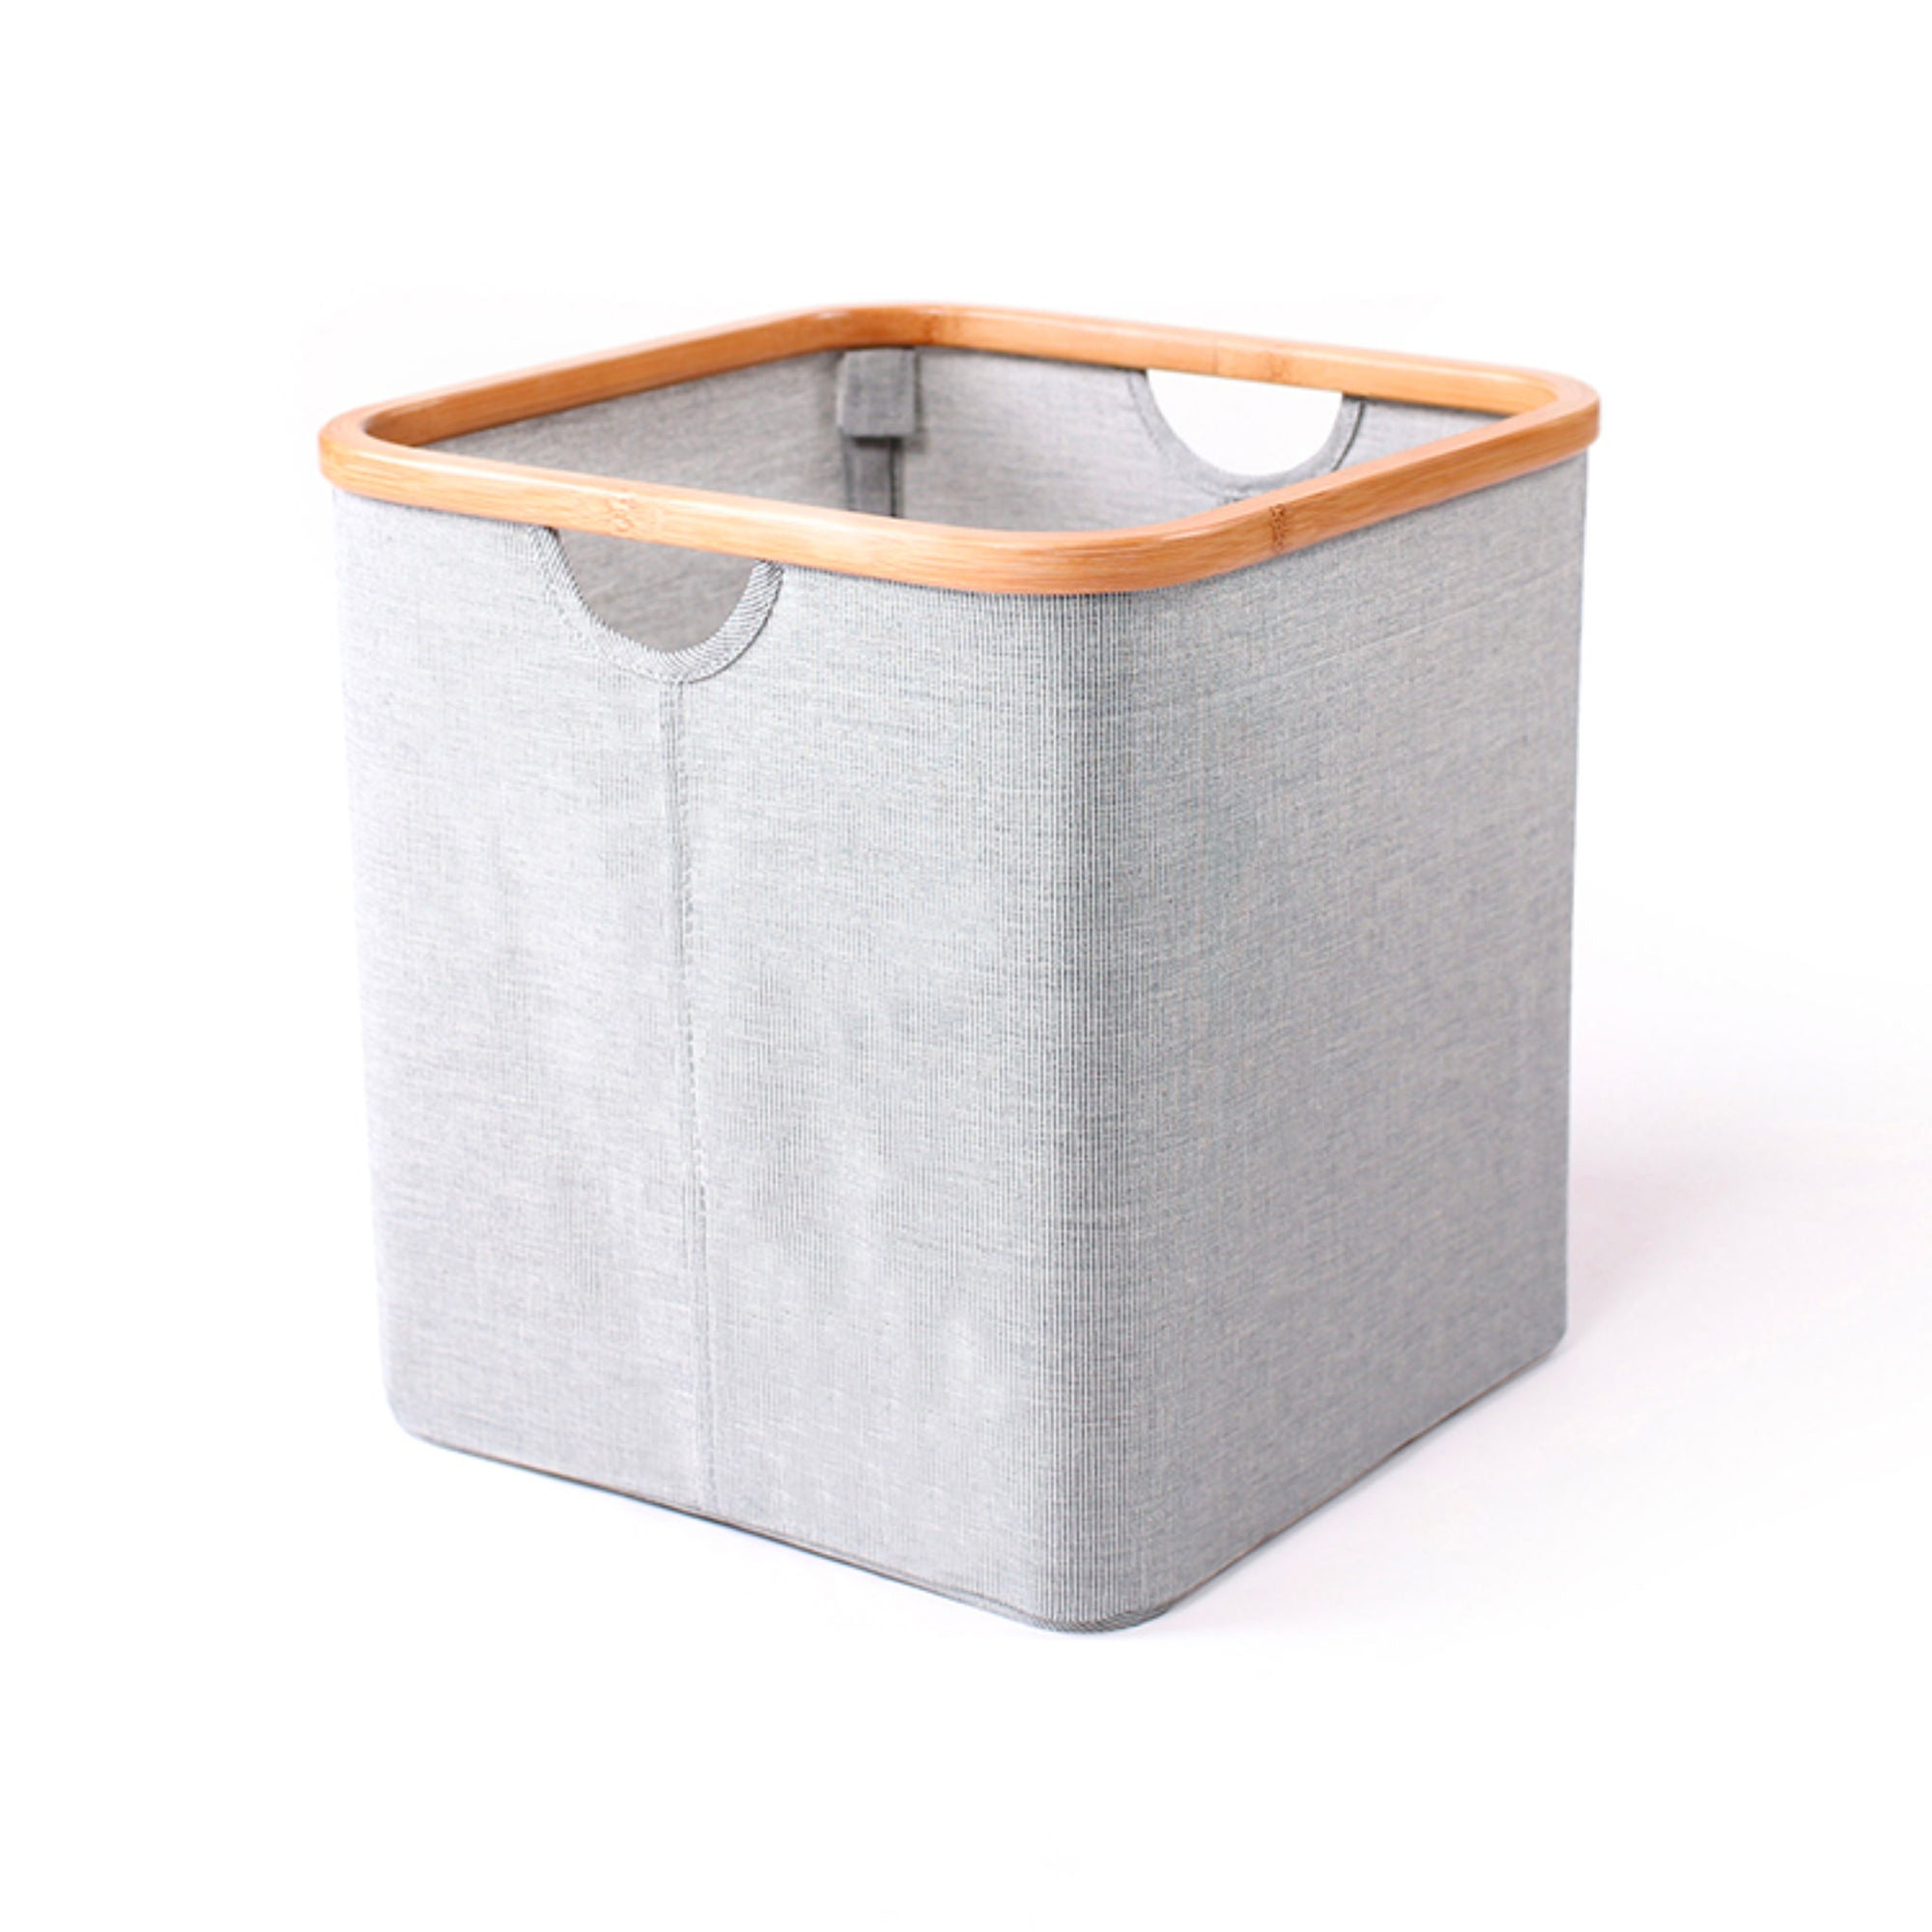 Gudee Frasa storage basket, square